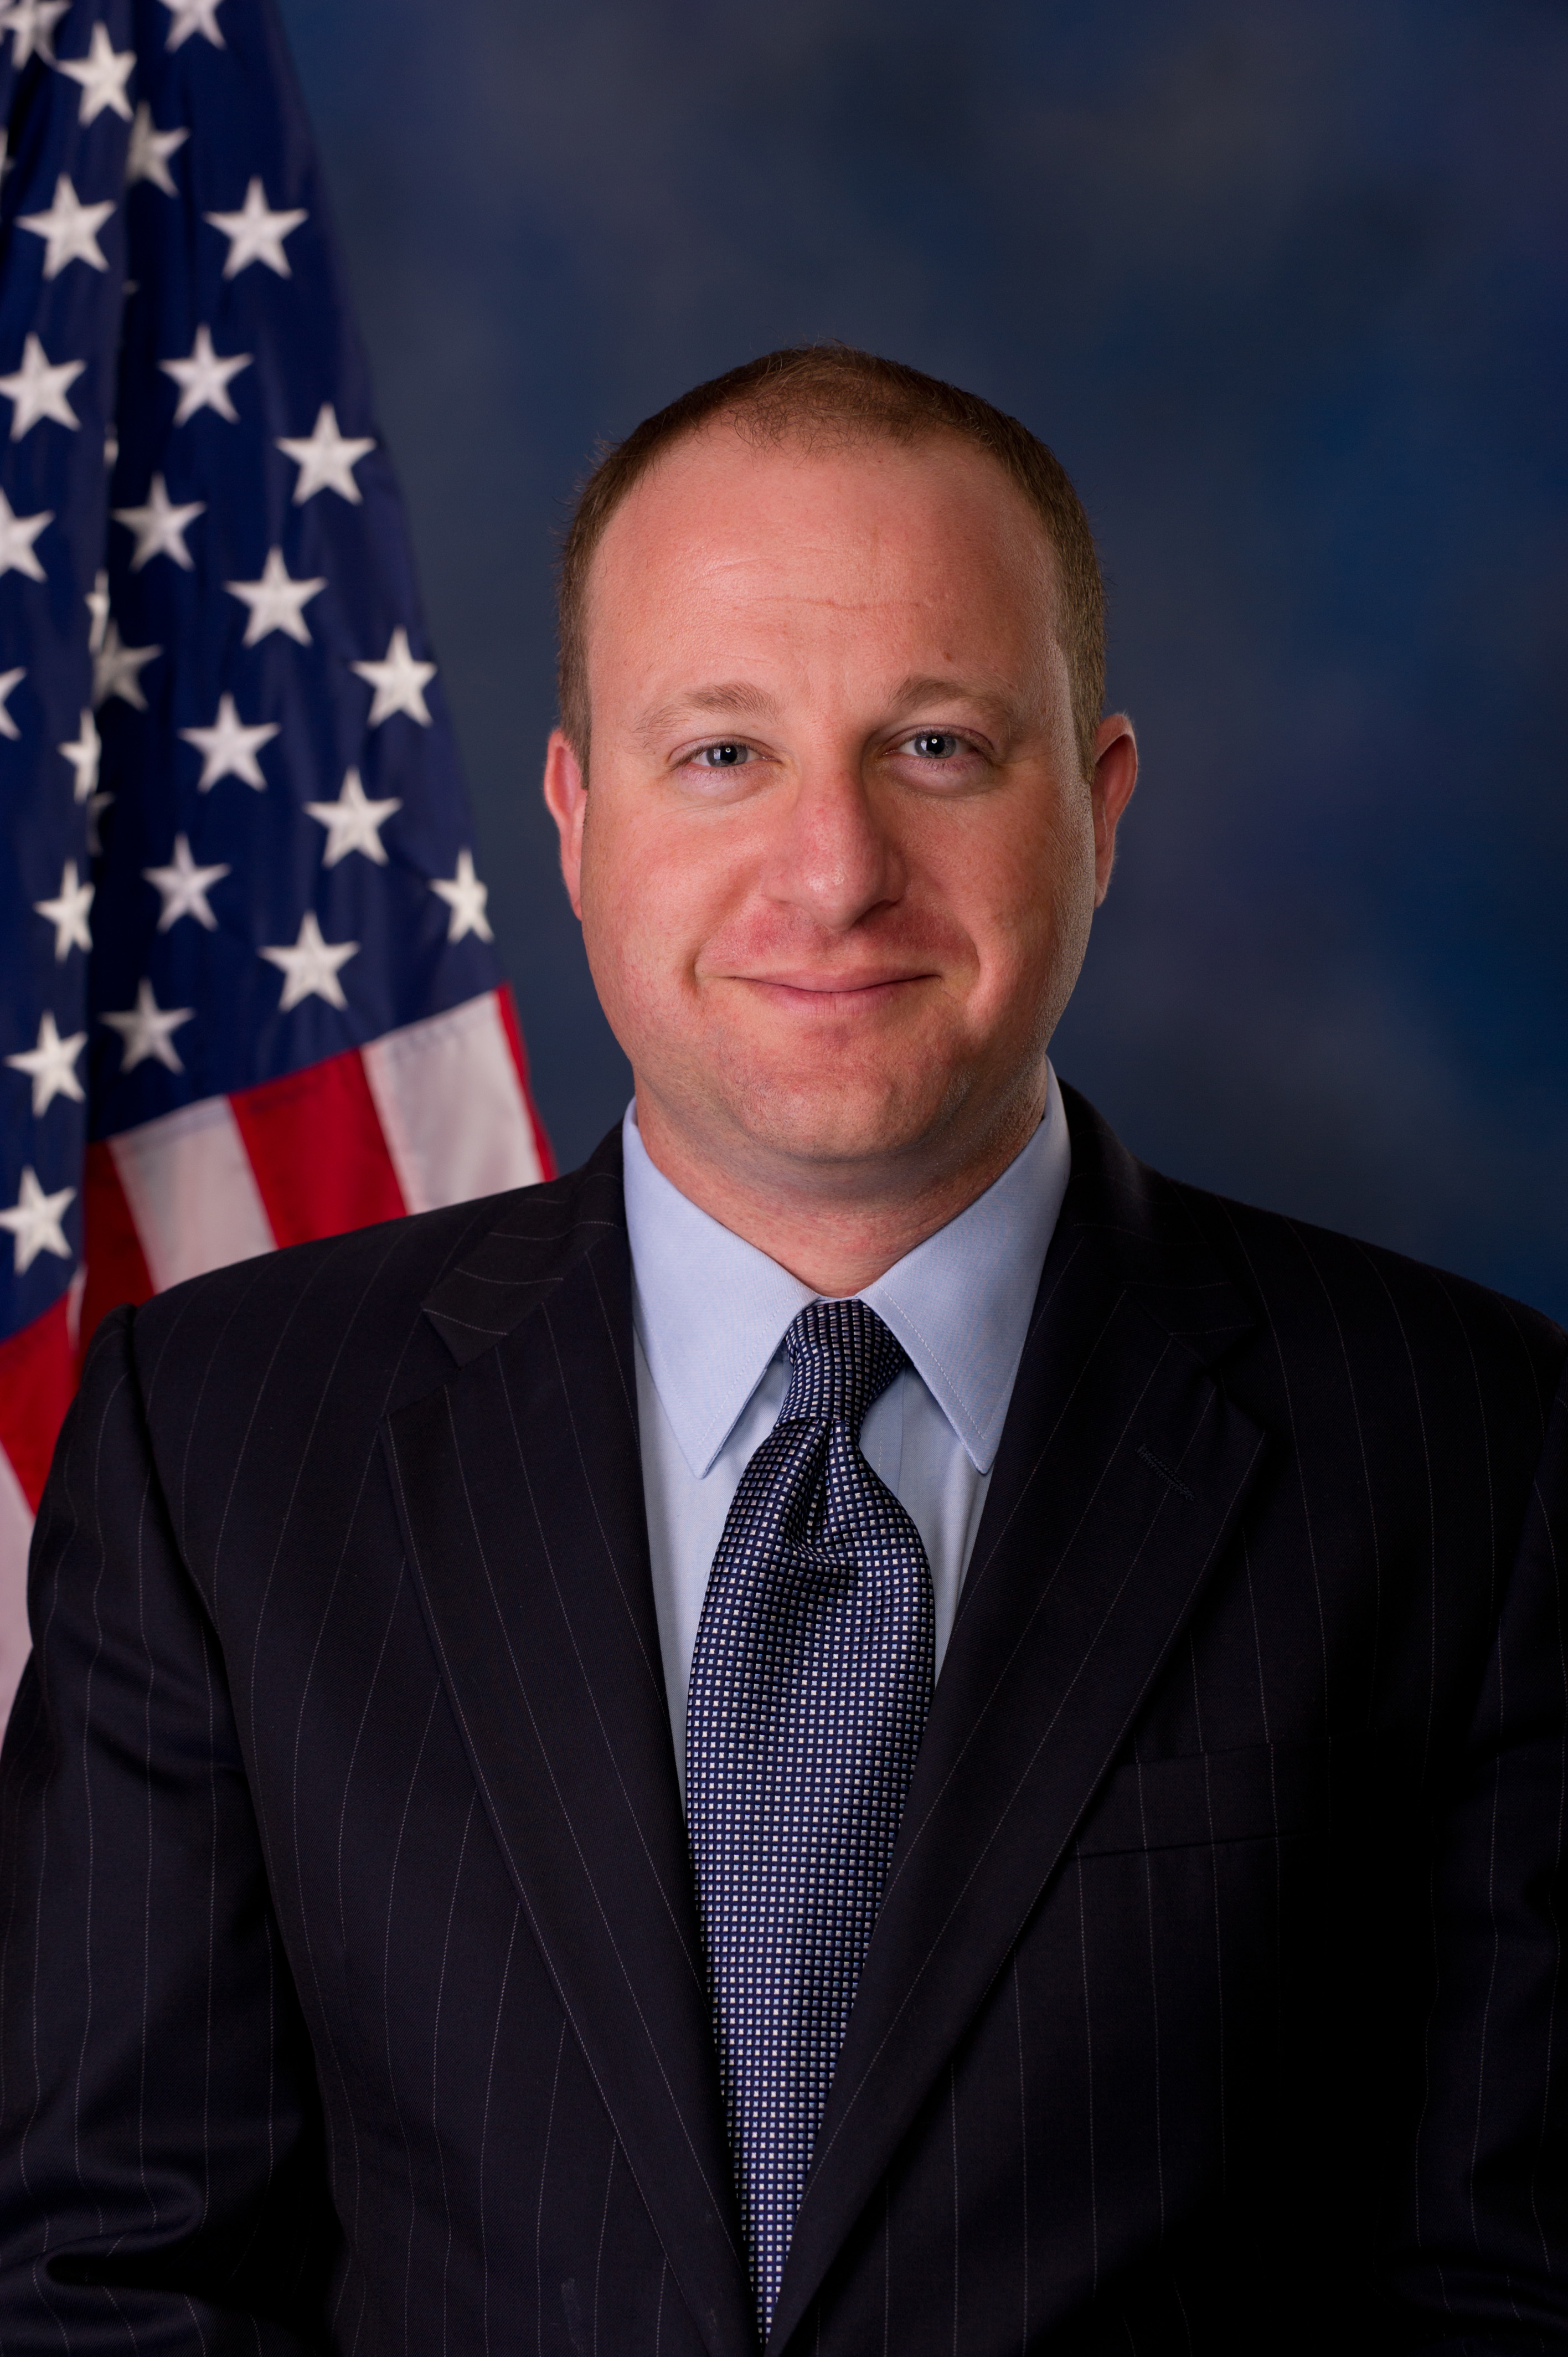 Jared Polis's quote #2